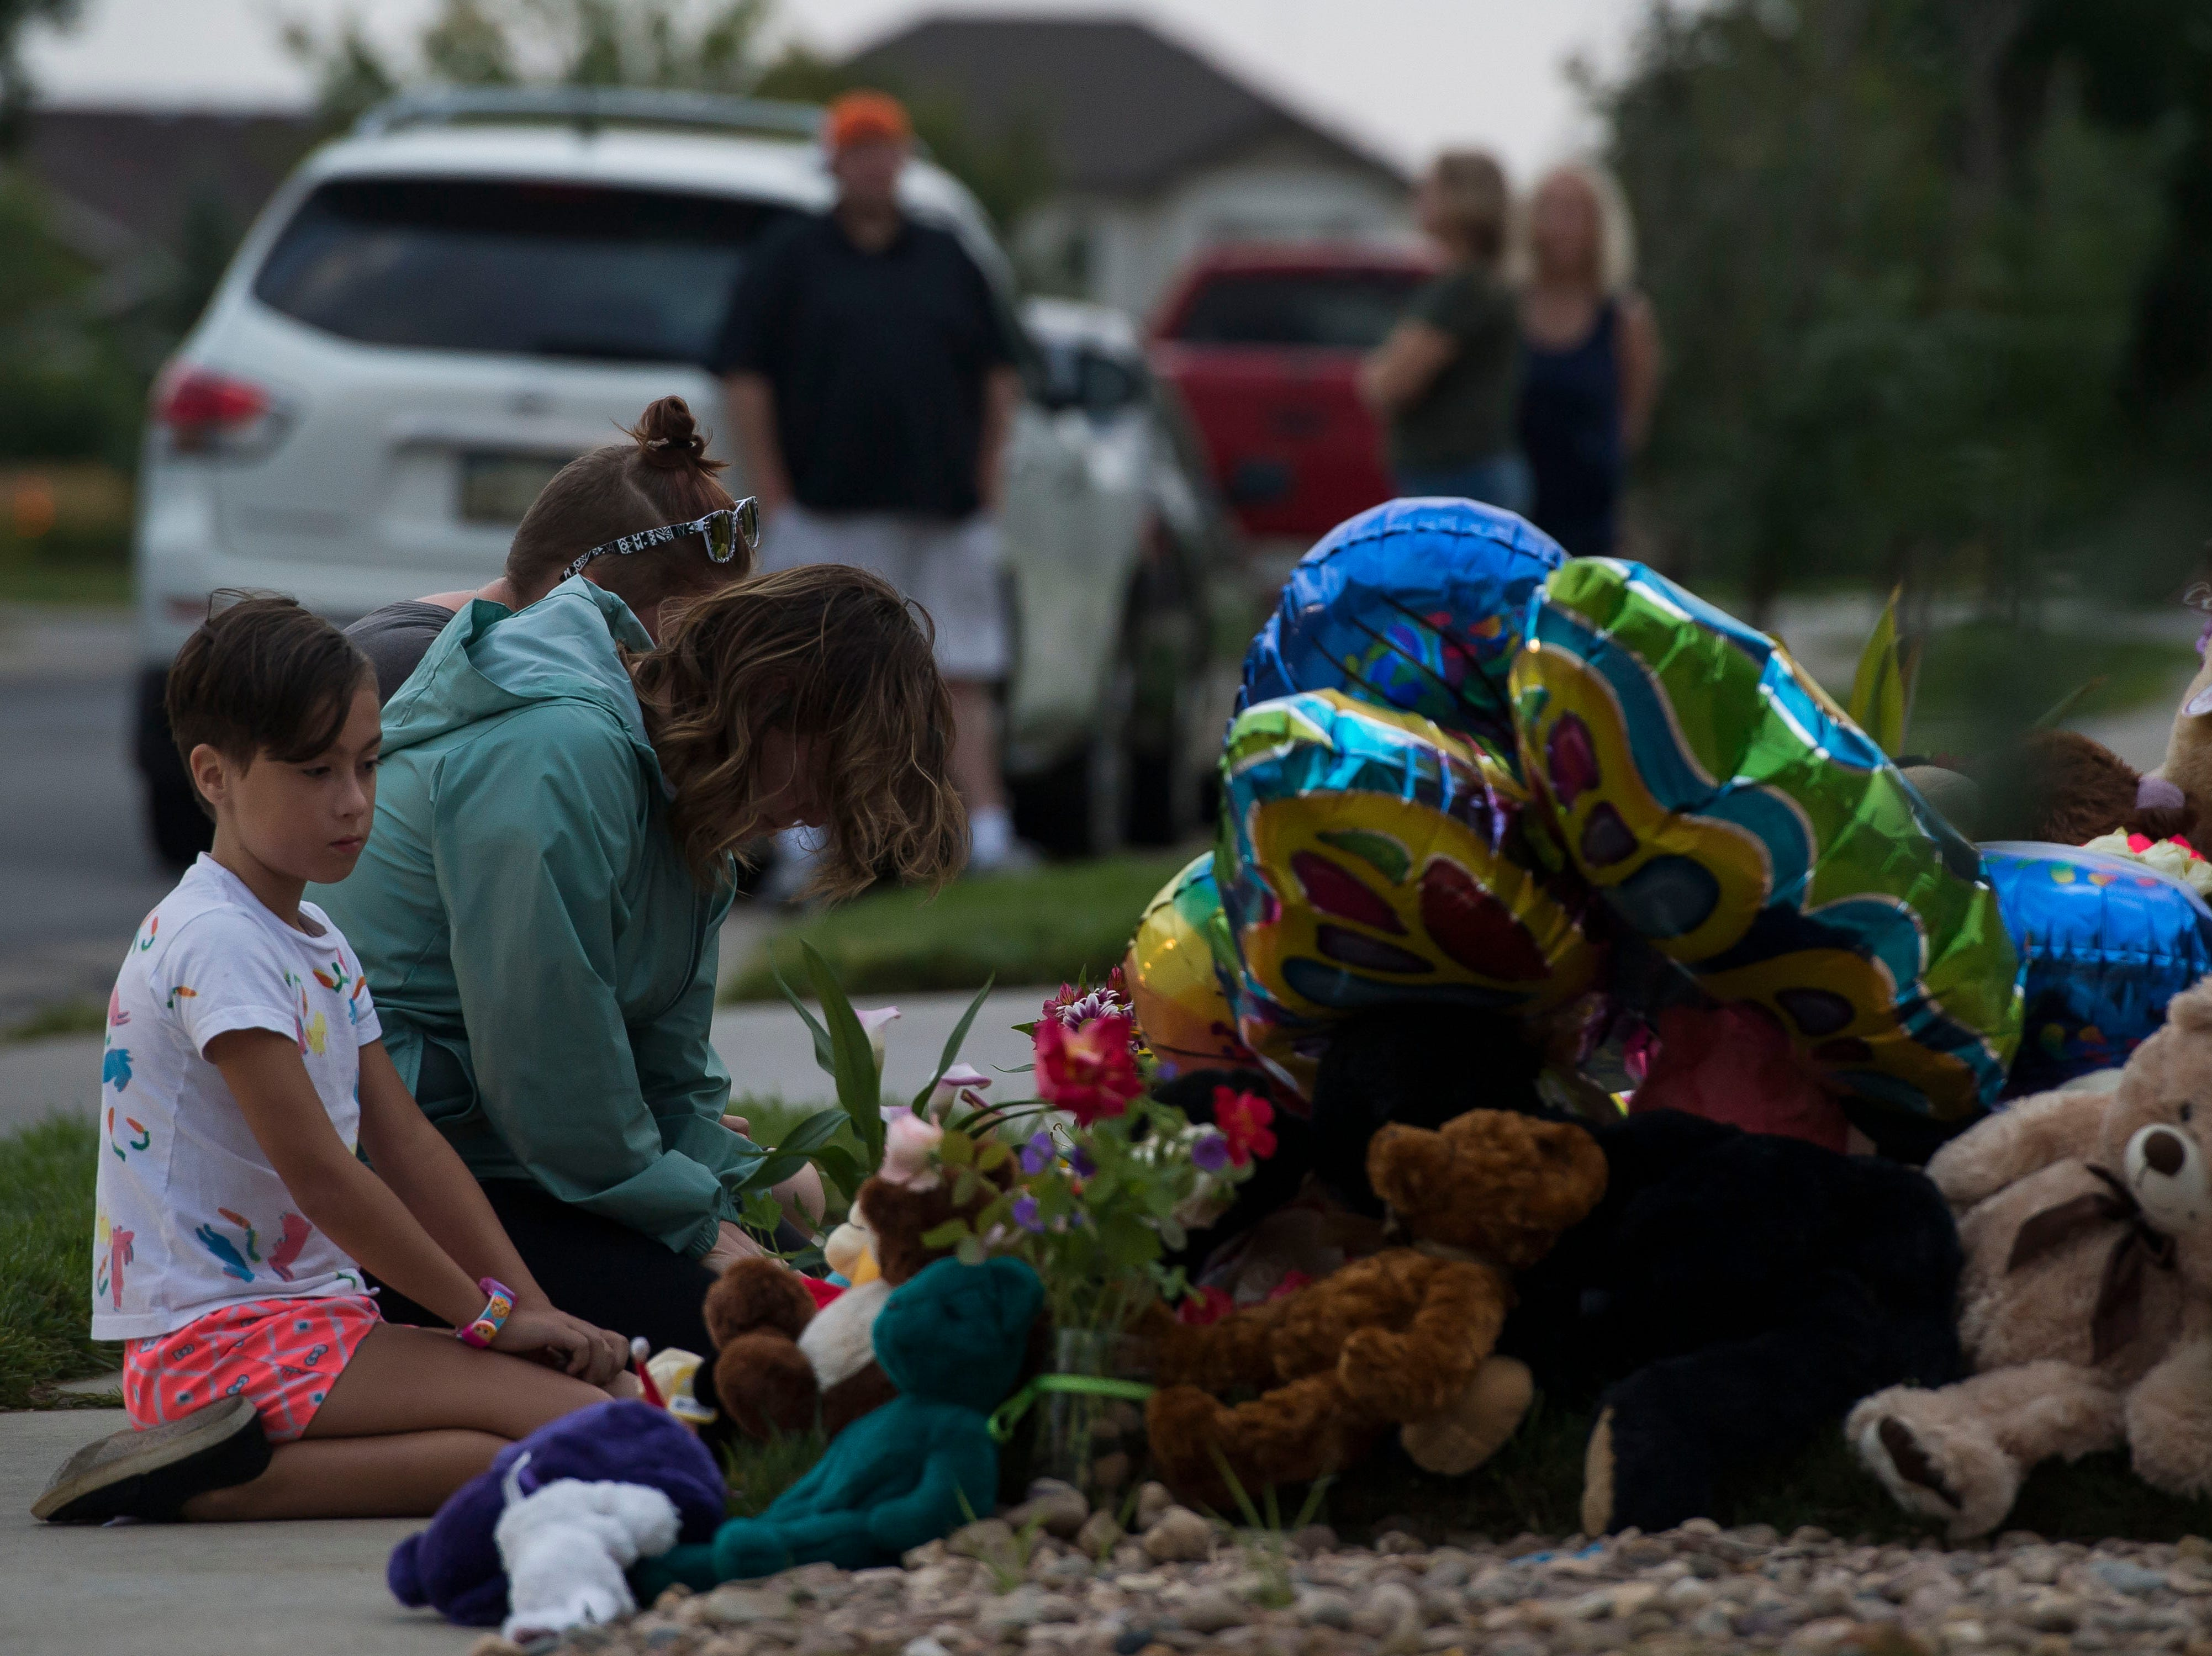 Brandi Banning lowers her head while visiting a memorial for the slain Shanann Watts and her two daughters, Bella, 4, and Celeste, 3, in front of the Watts' family home on Friday, Aug. 17, 2018, in Frederick, Colo.